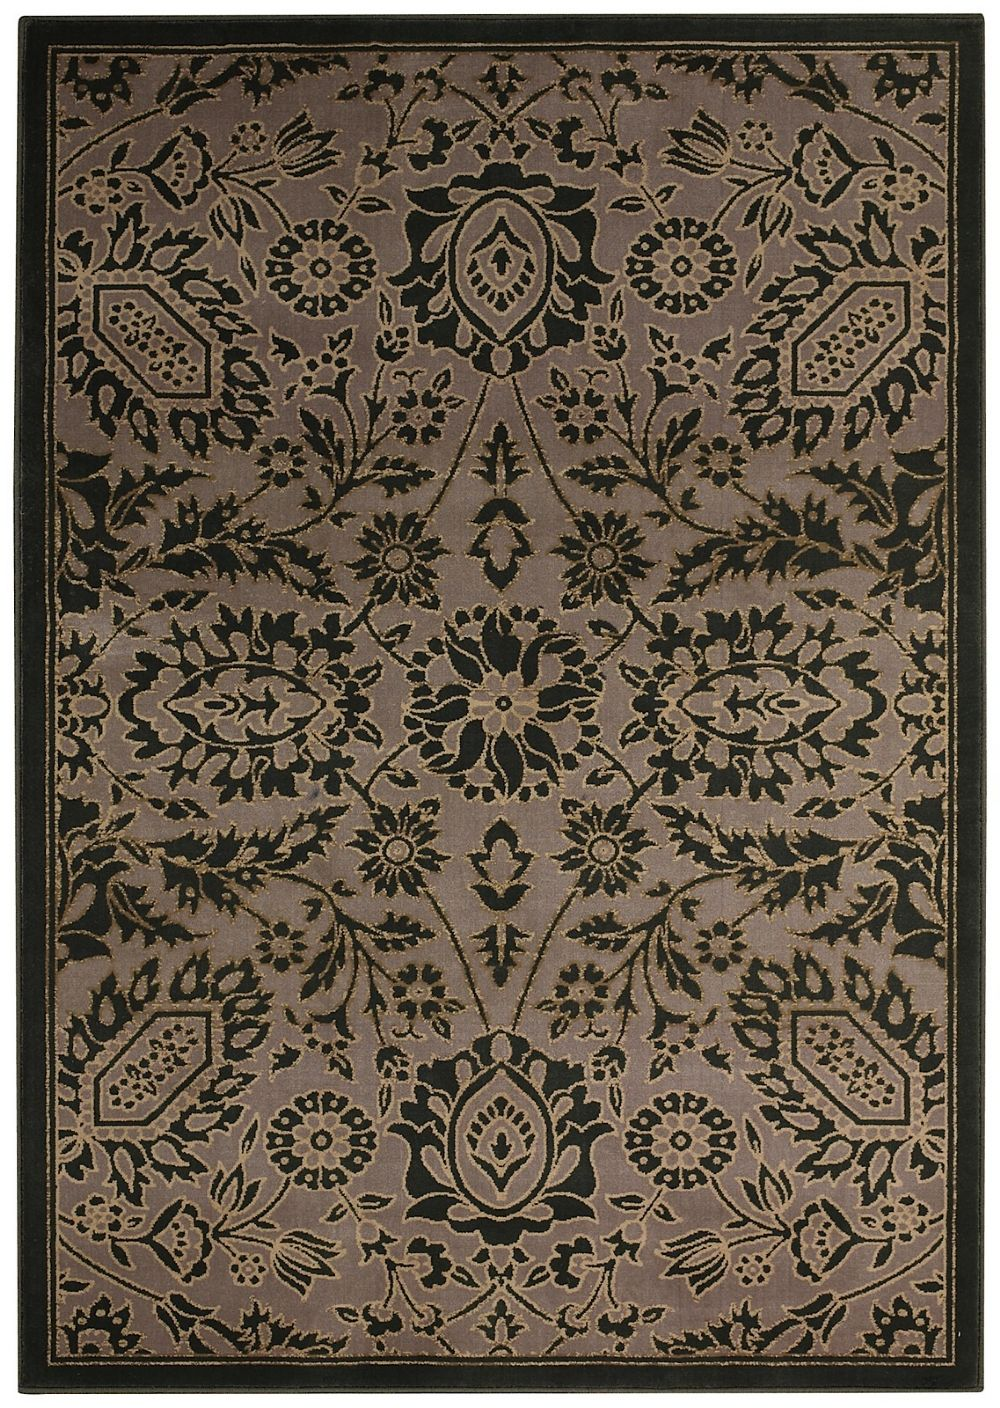 capel quiescent-tulip transitional area rug collection